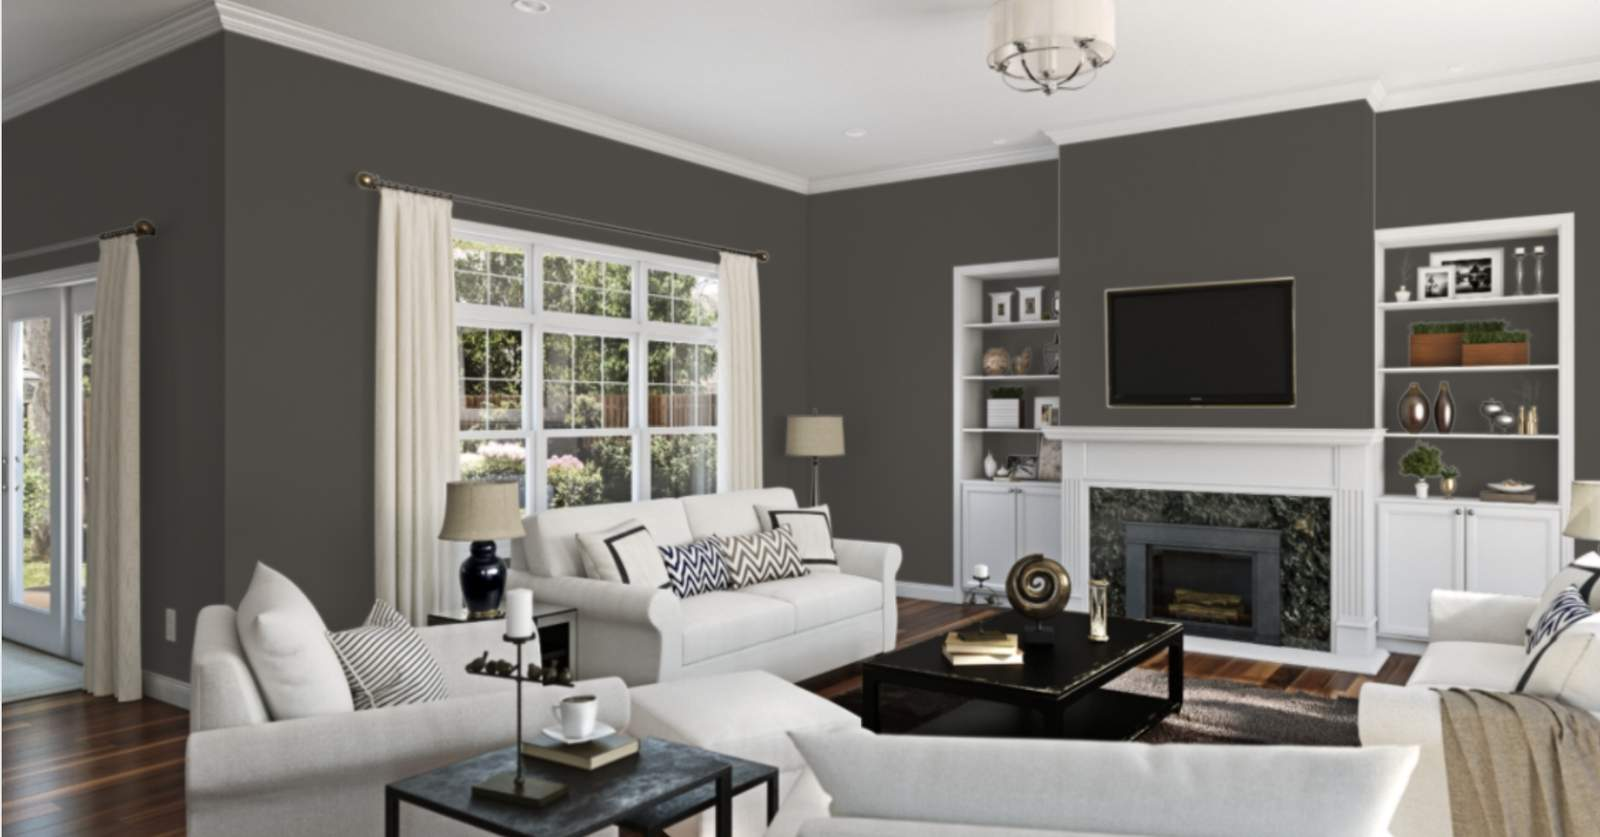 Sherwin Williams Reveals Urbane Bronze As 2021 Color Of The Year